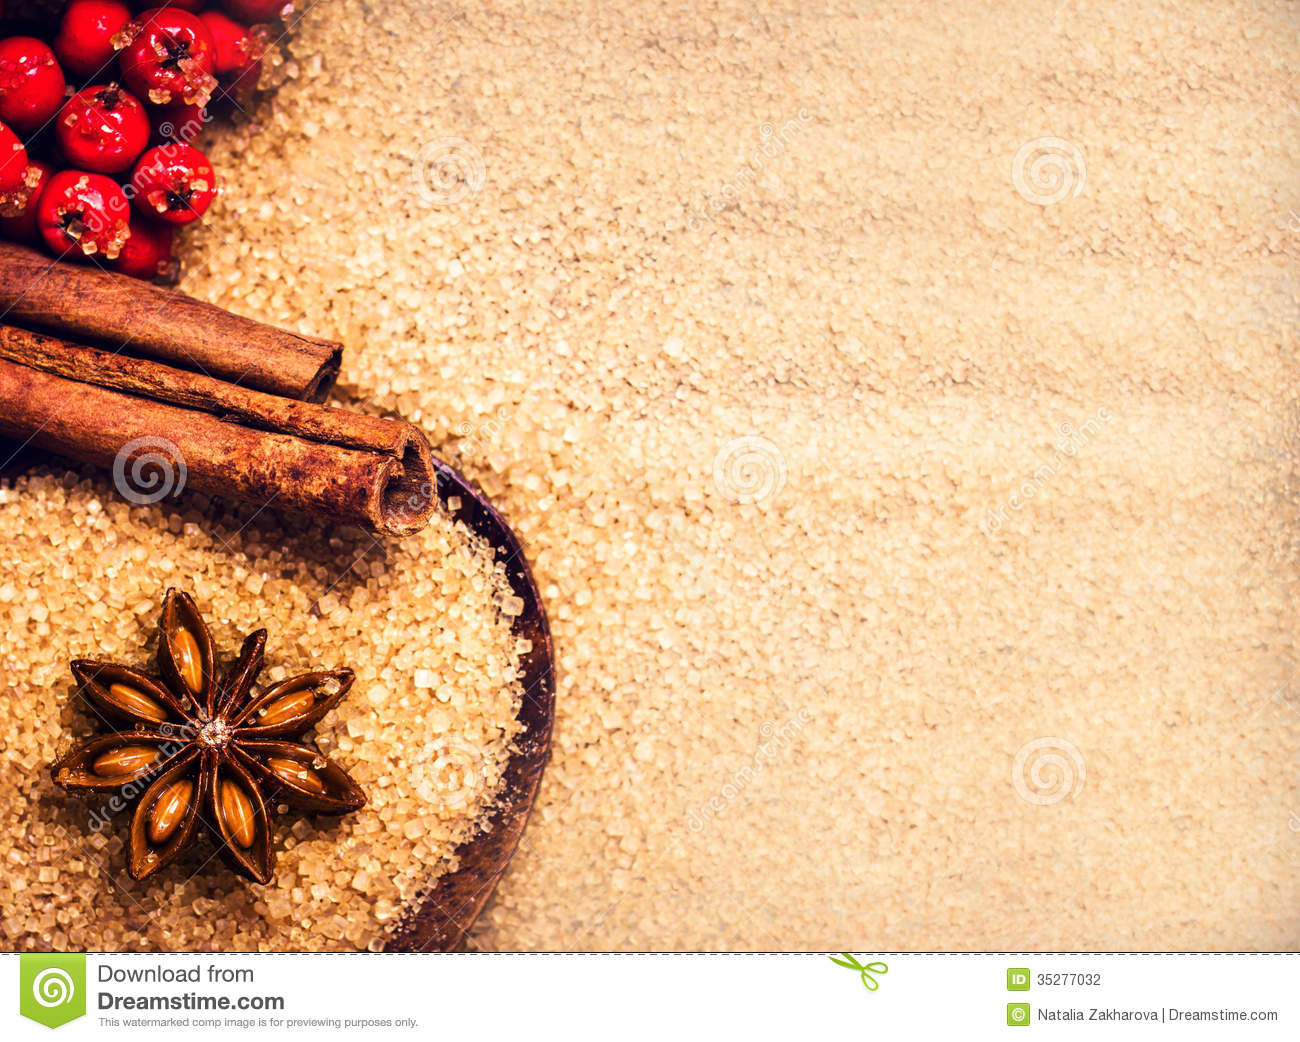 Wallpaper Natal 3d Christmas Background With Brown Sugar Anise Star And